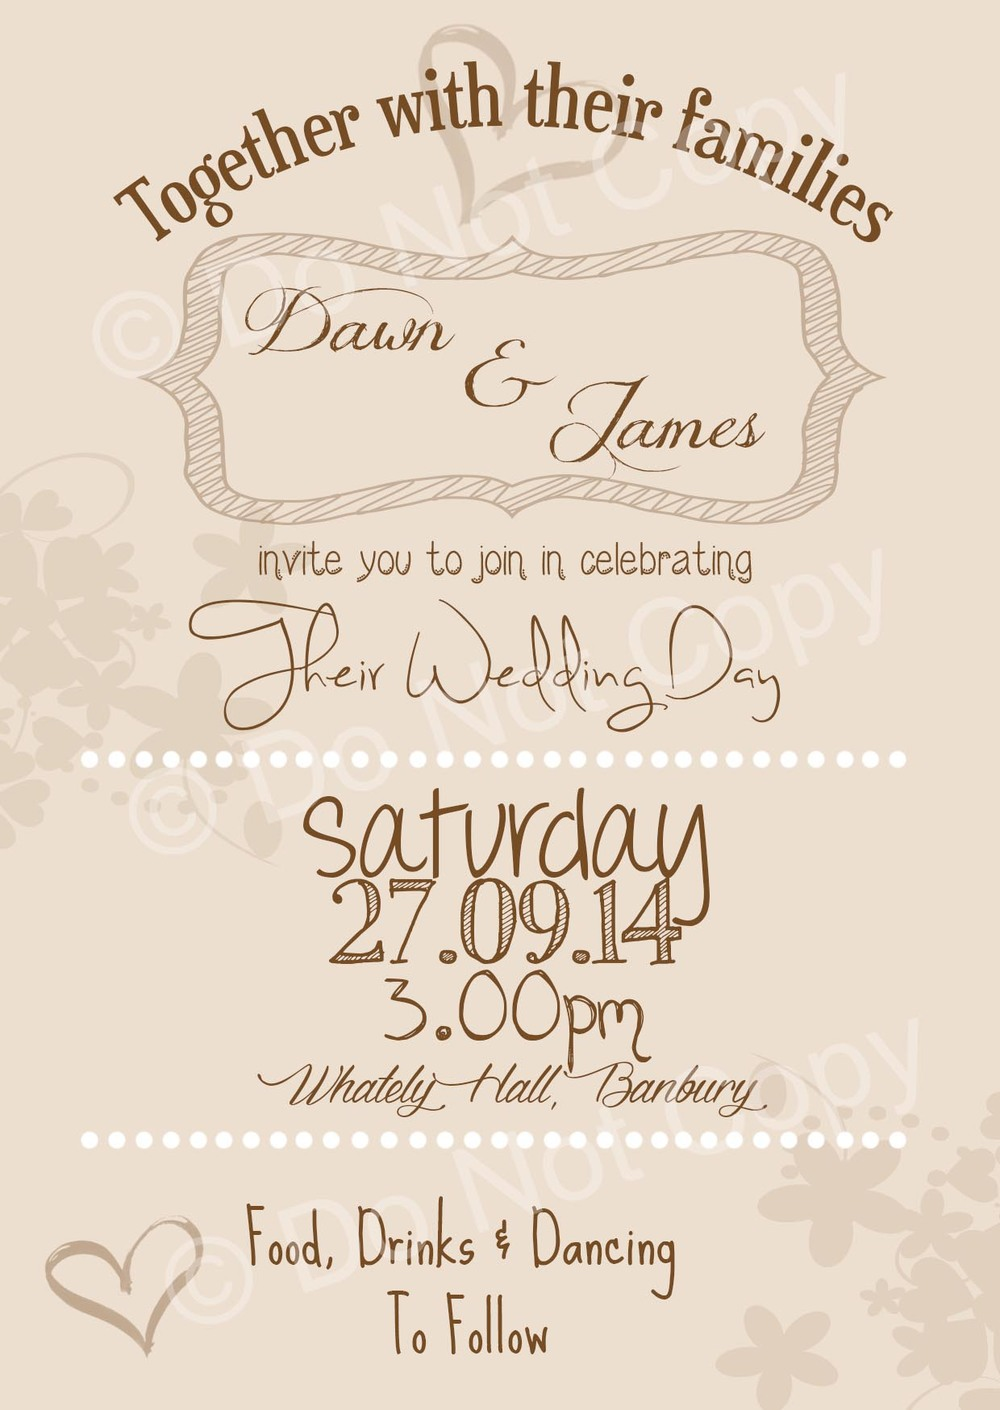 sample wedding invite 2fb.jpg